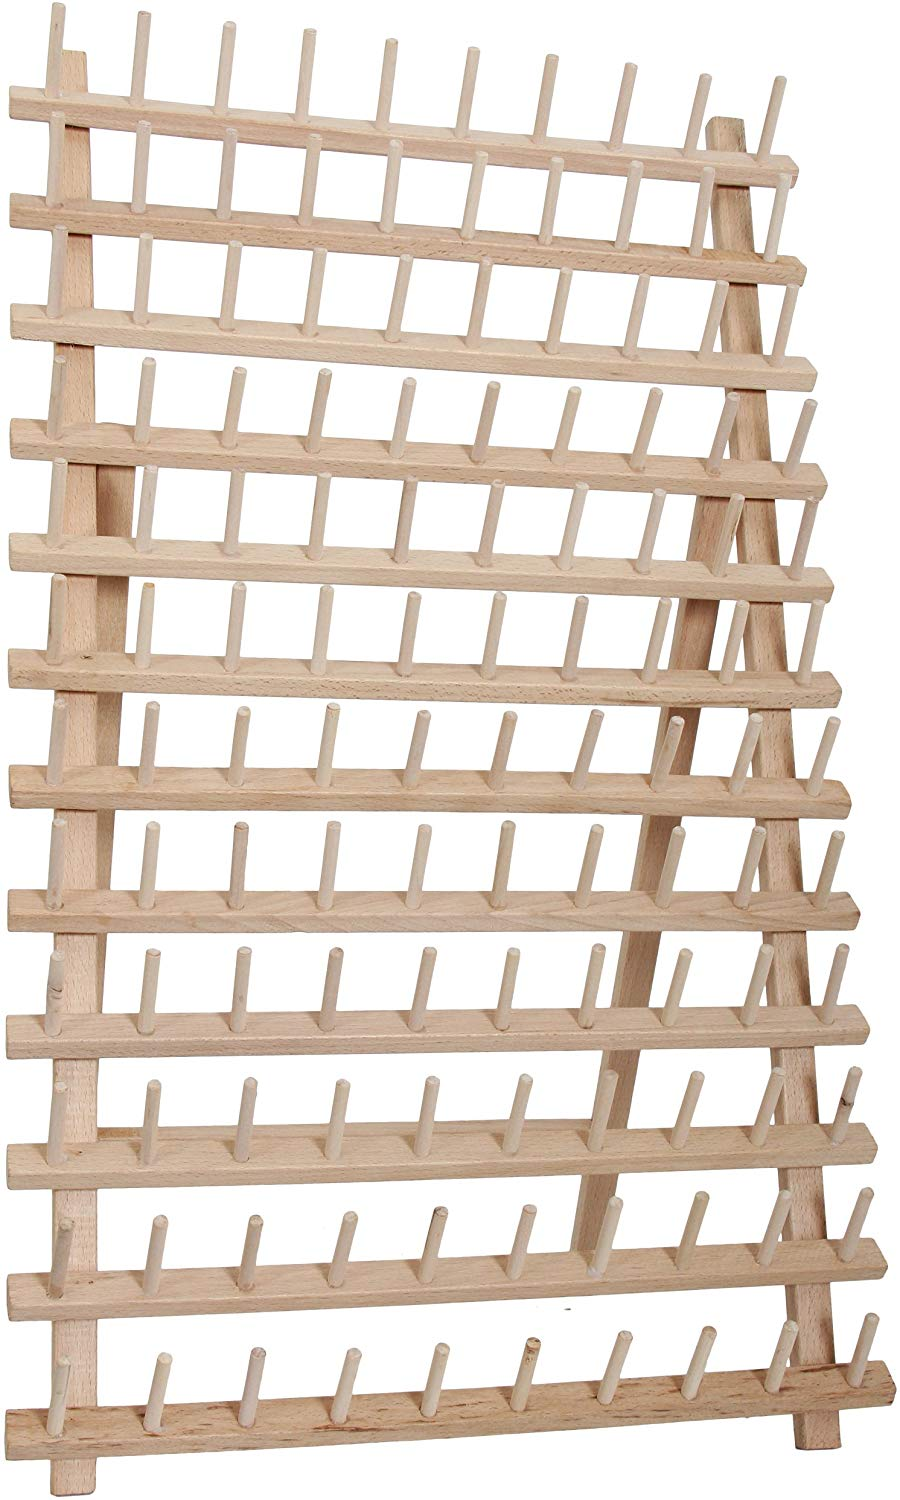 threadart 120 spool cone wood thread rack made of hardwood sturdy freestanding or wall mount 3 sizes available